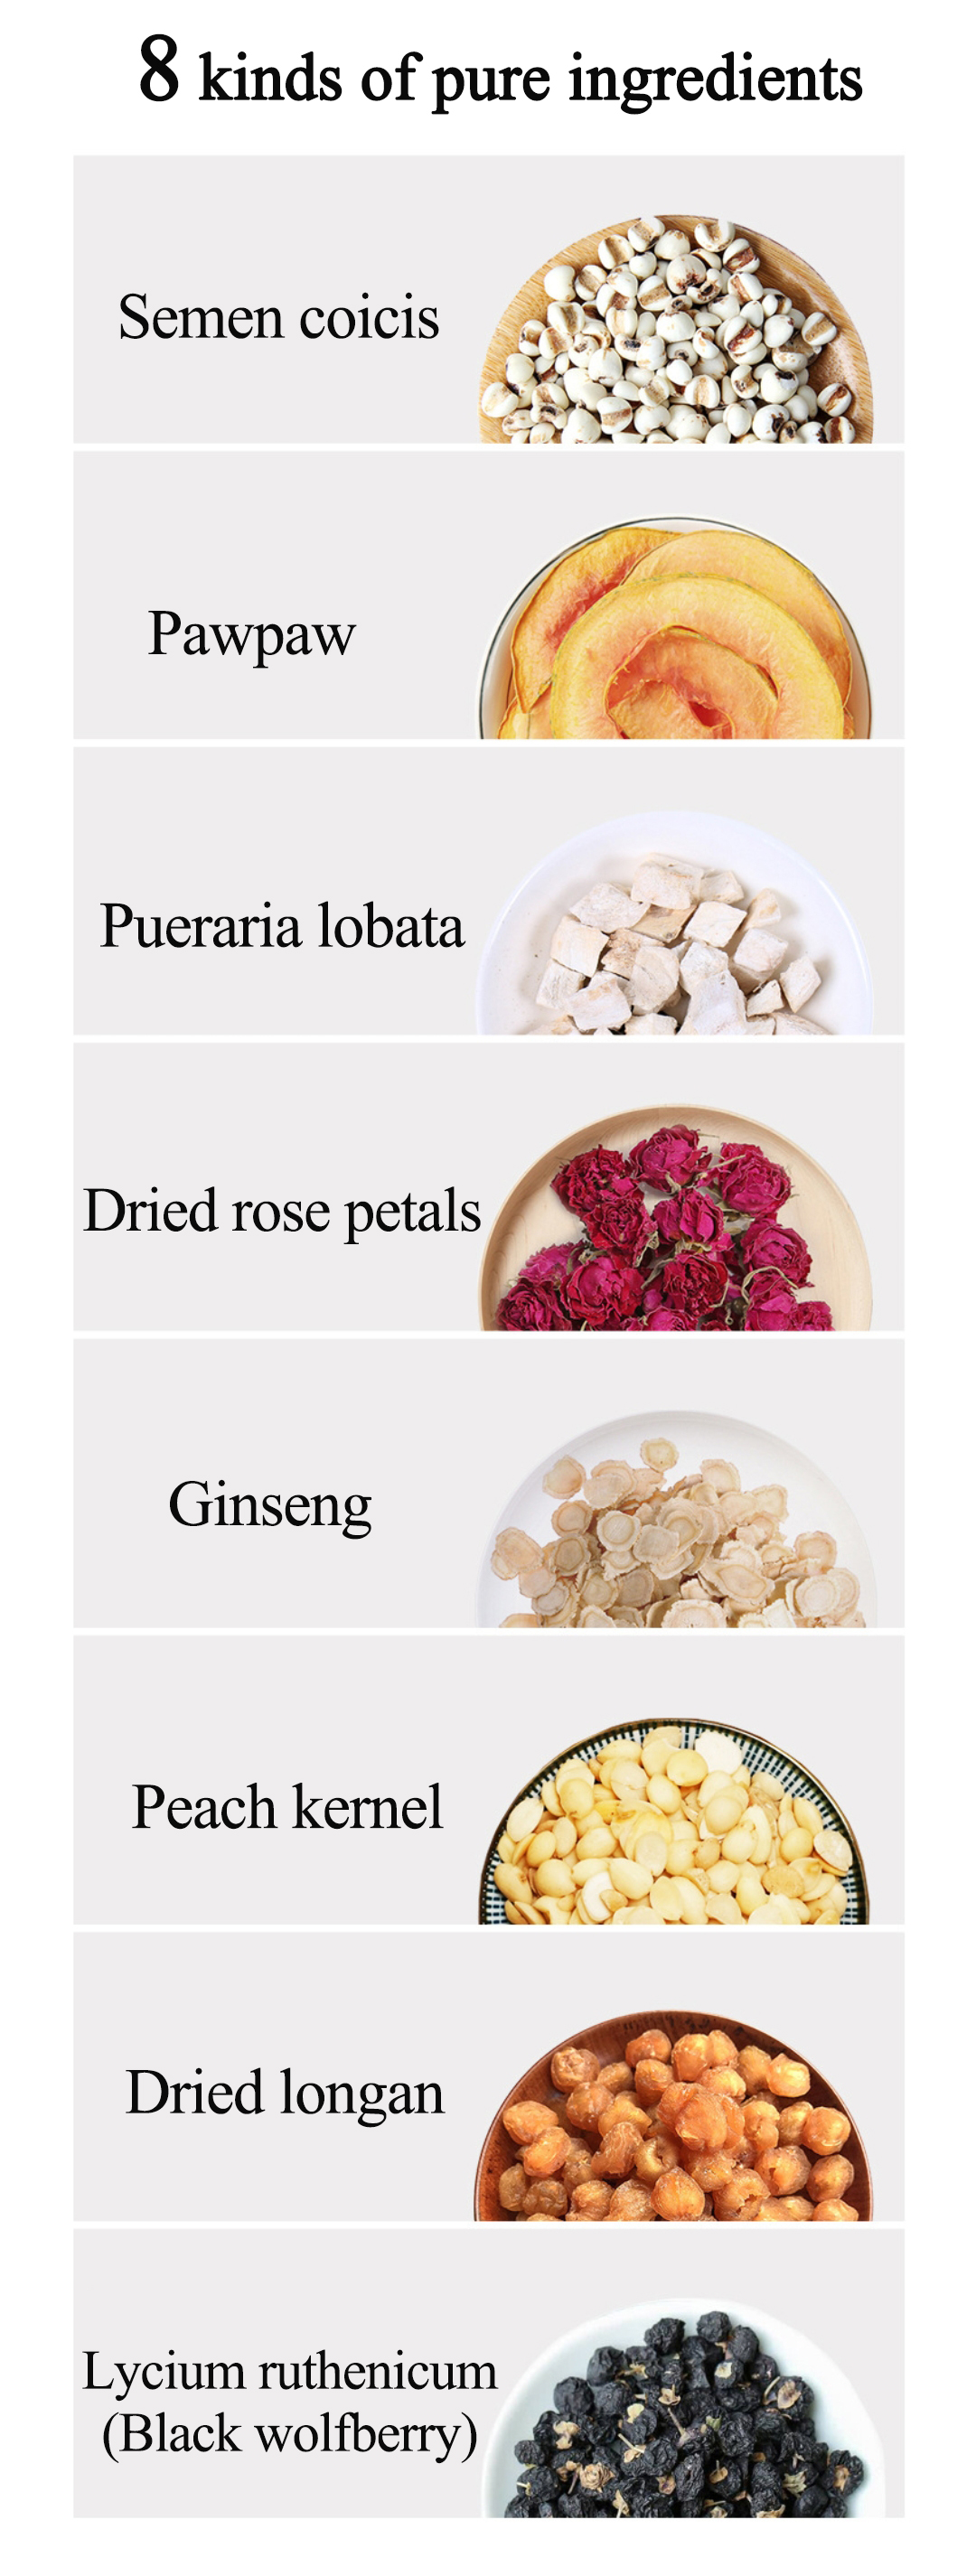 Private Label Wholesale Peach Blossom Petals&Dried Roses Chinese Herbal Tea Warm Stomach And Detox Slimming Tea Bags - 4uTea   4uTea.com